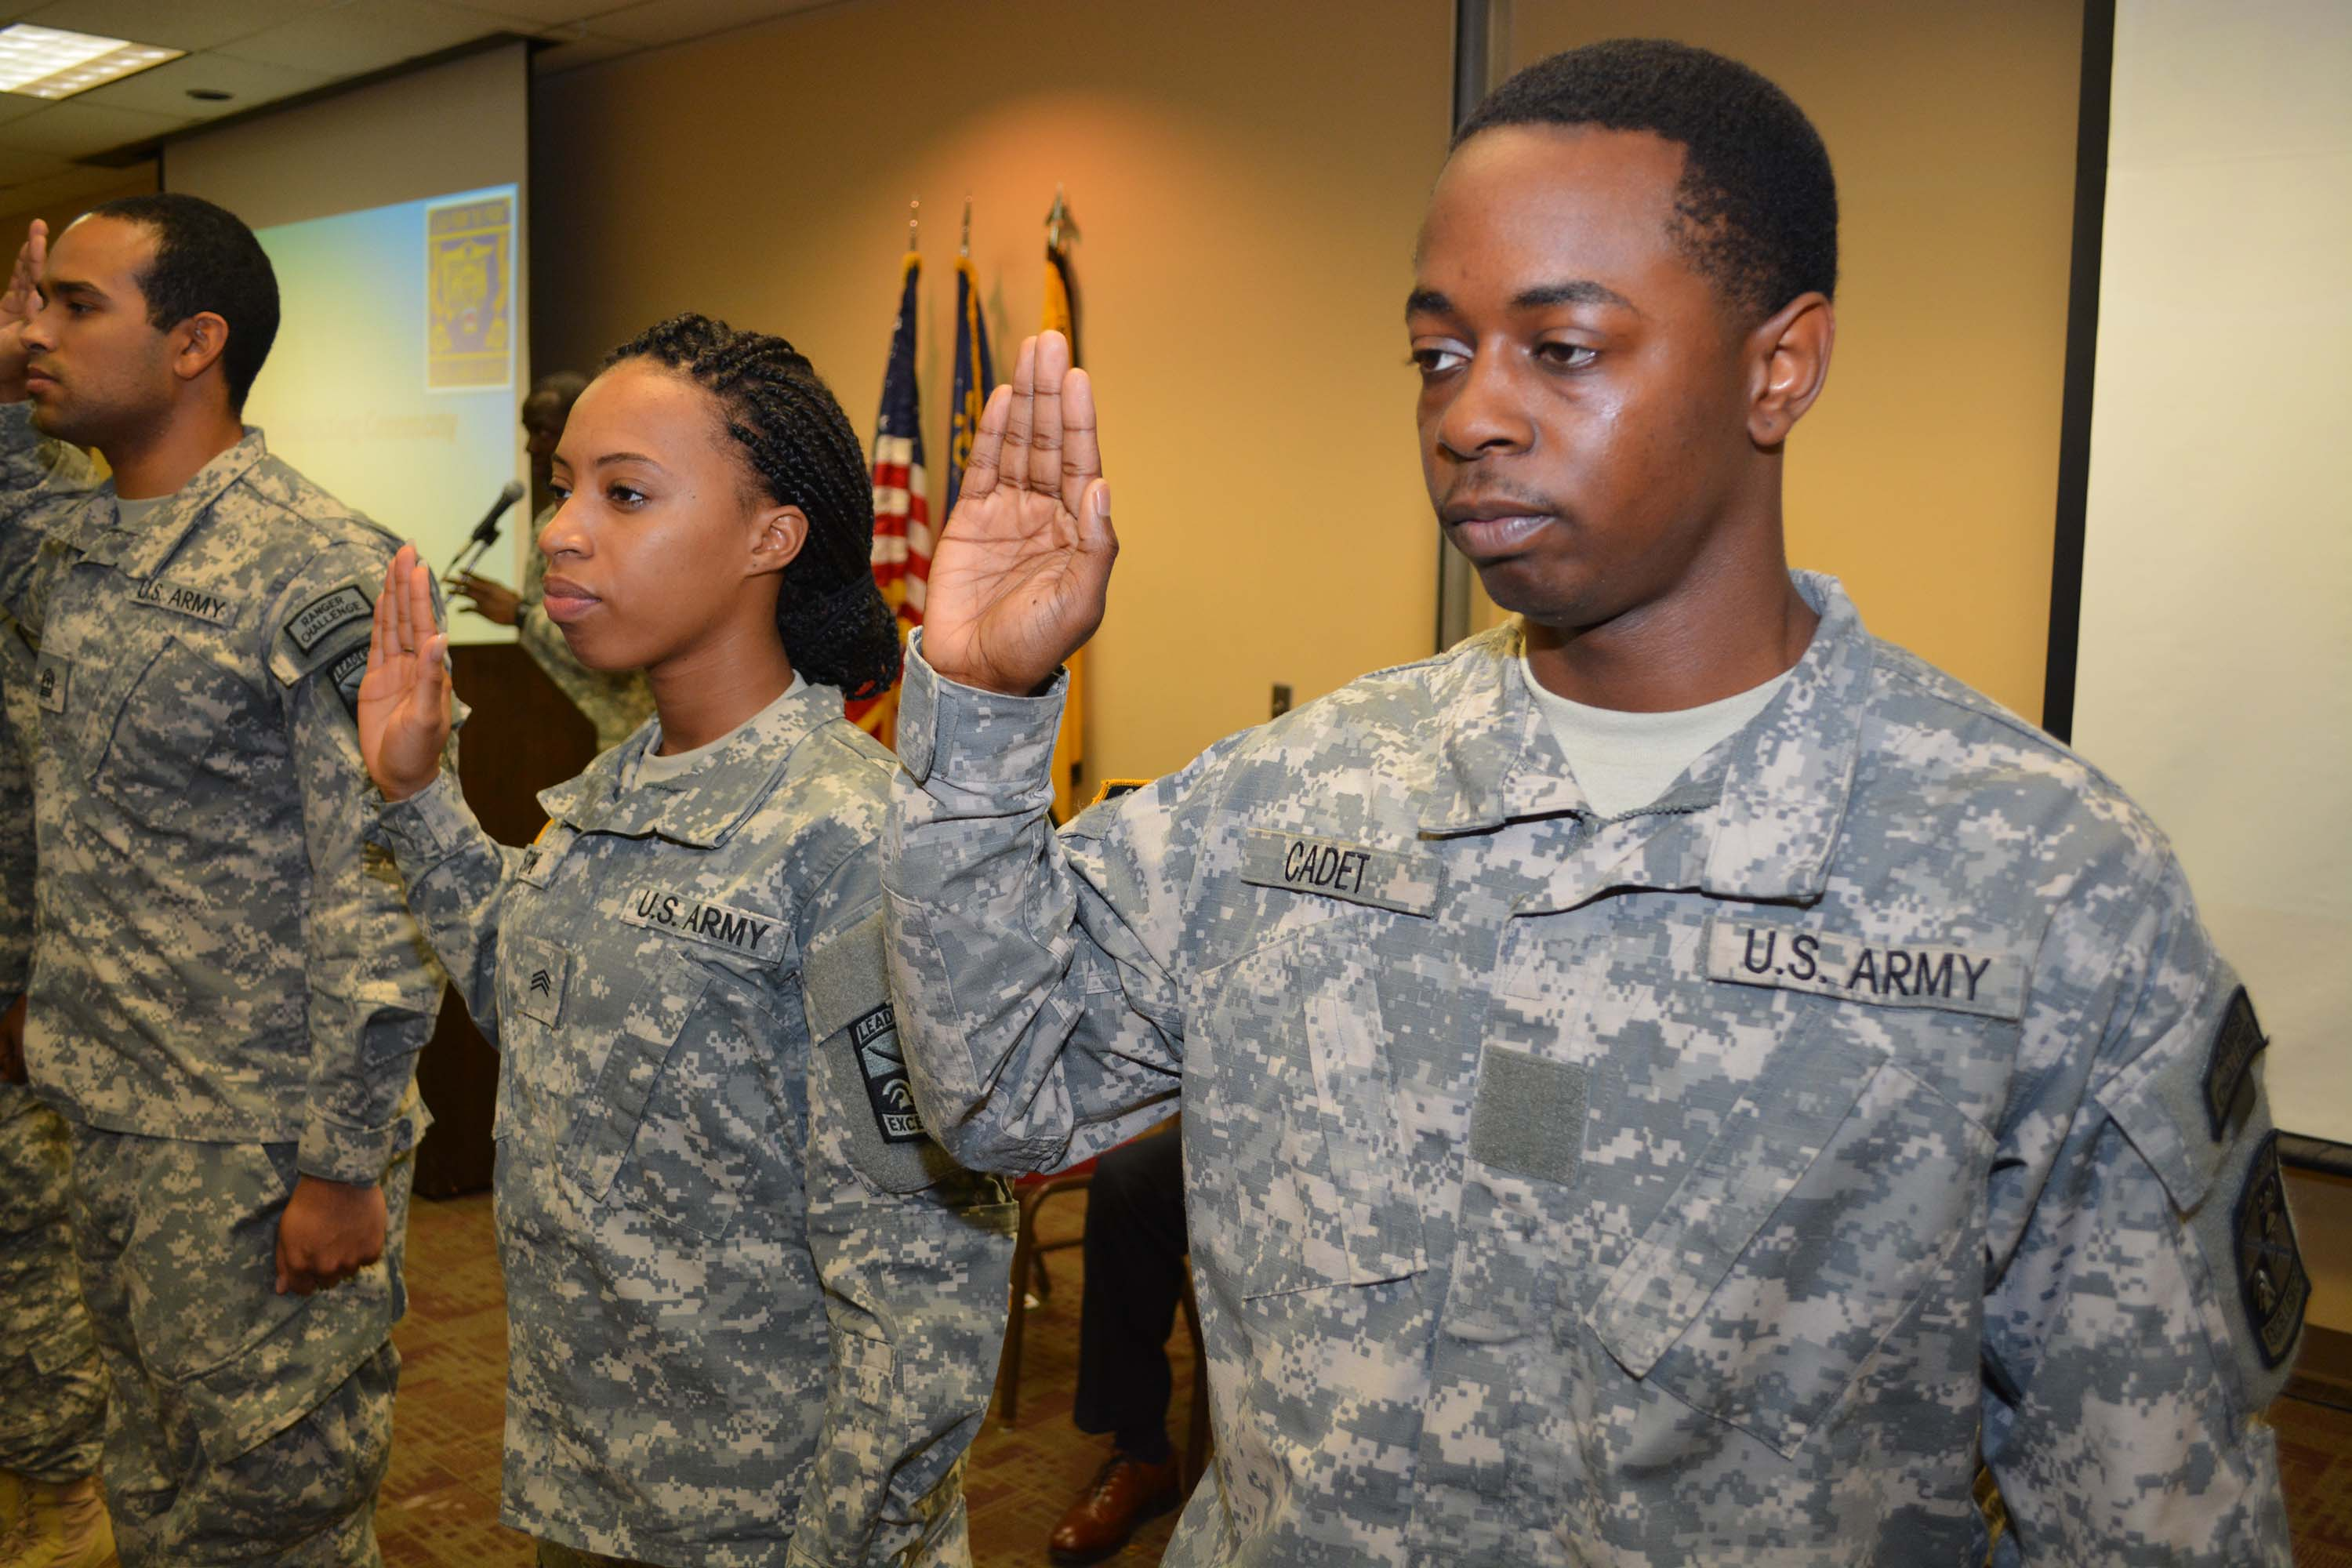 Cadets sign contracting agreement with U.S. Army